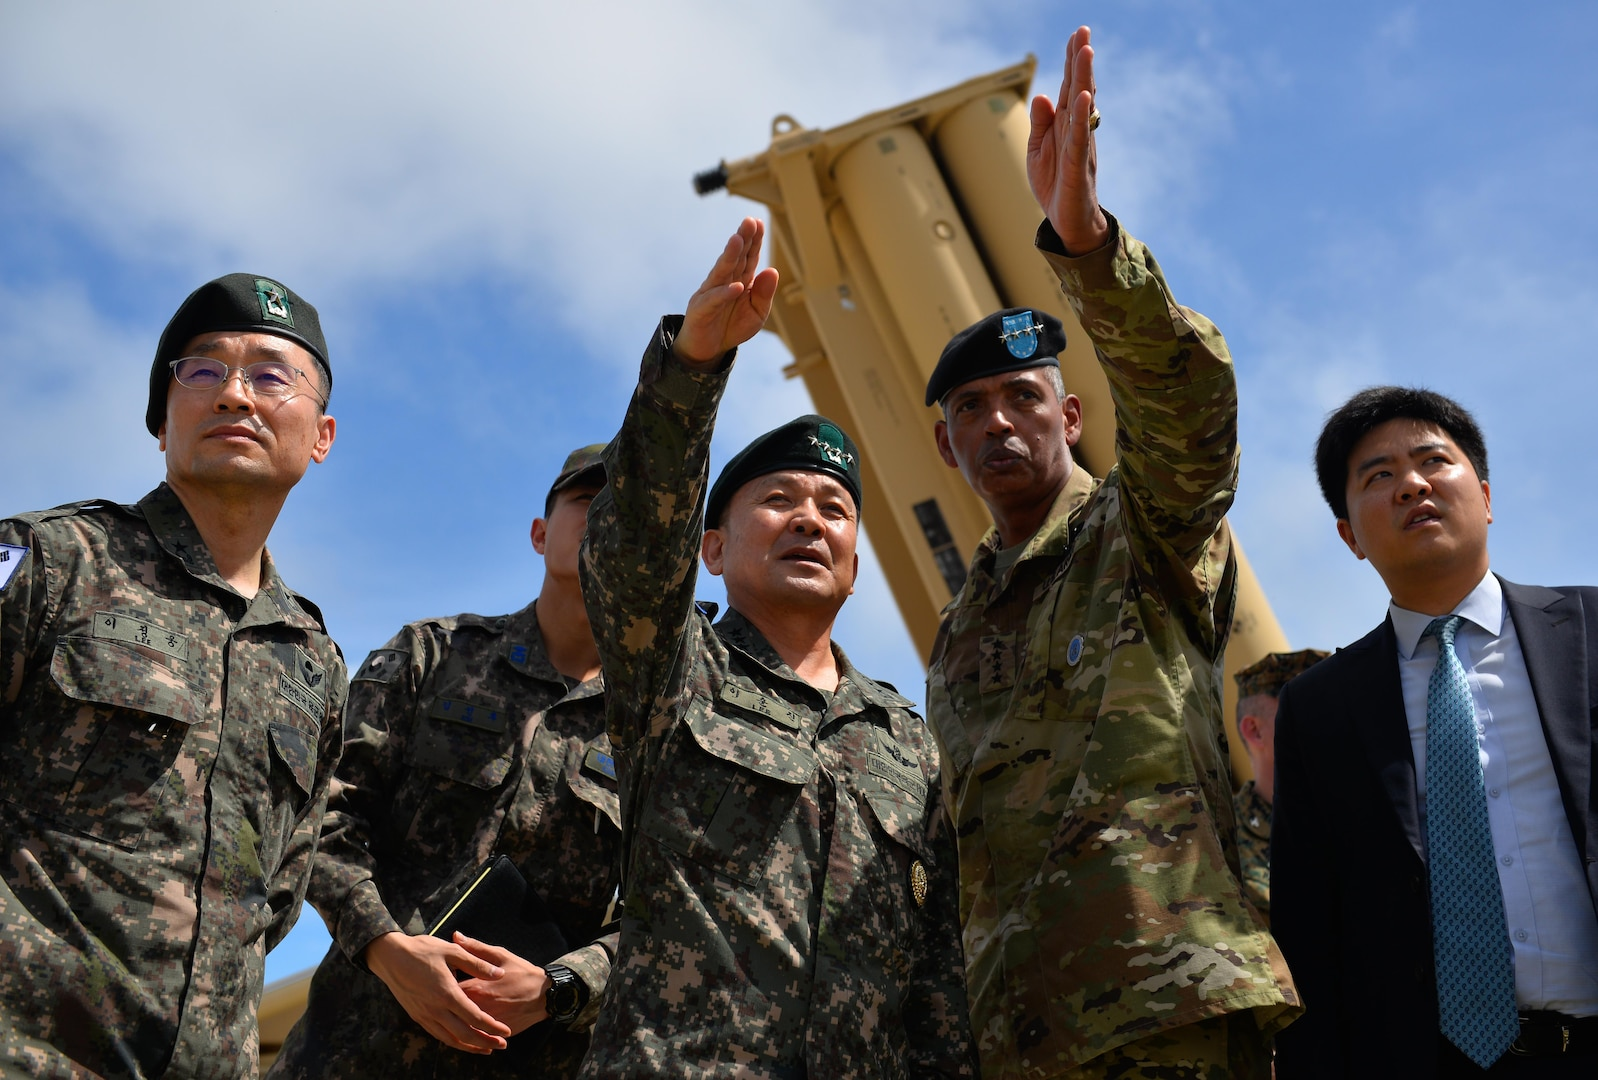 South Korea's Gen. Sun Jin Lee, Republic of Korea Army chairman and joint chiefs of staff visits Guam's Terminal High Altitude Area Defense, or THAAD, site Nov. 1, 2016, along with Gen. Vincent K. Brooks, commander of the combined U.S. forces in South Korea,  along with U.S. Army Gen. Vincent K. Brooks, commander of the combined U.S. forces in South Korea. The two generals also visited a line of B-1B Lancers at Andersen Air Force Base, as well as boarded the visiting ballistic missile submarine USS Pennsylvania at Naval Base Guam.